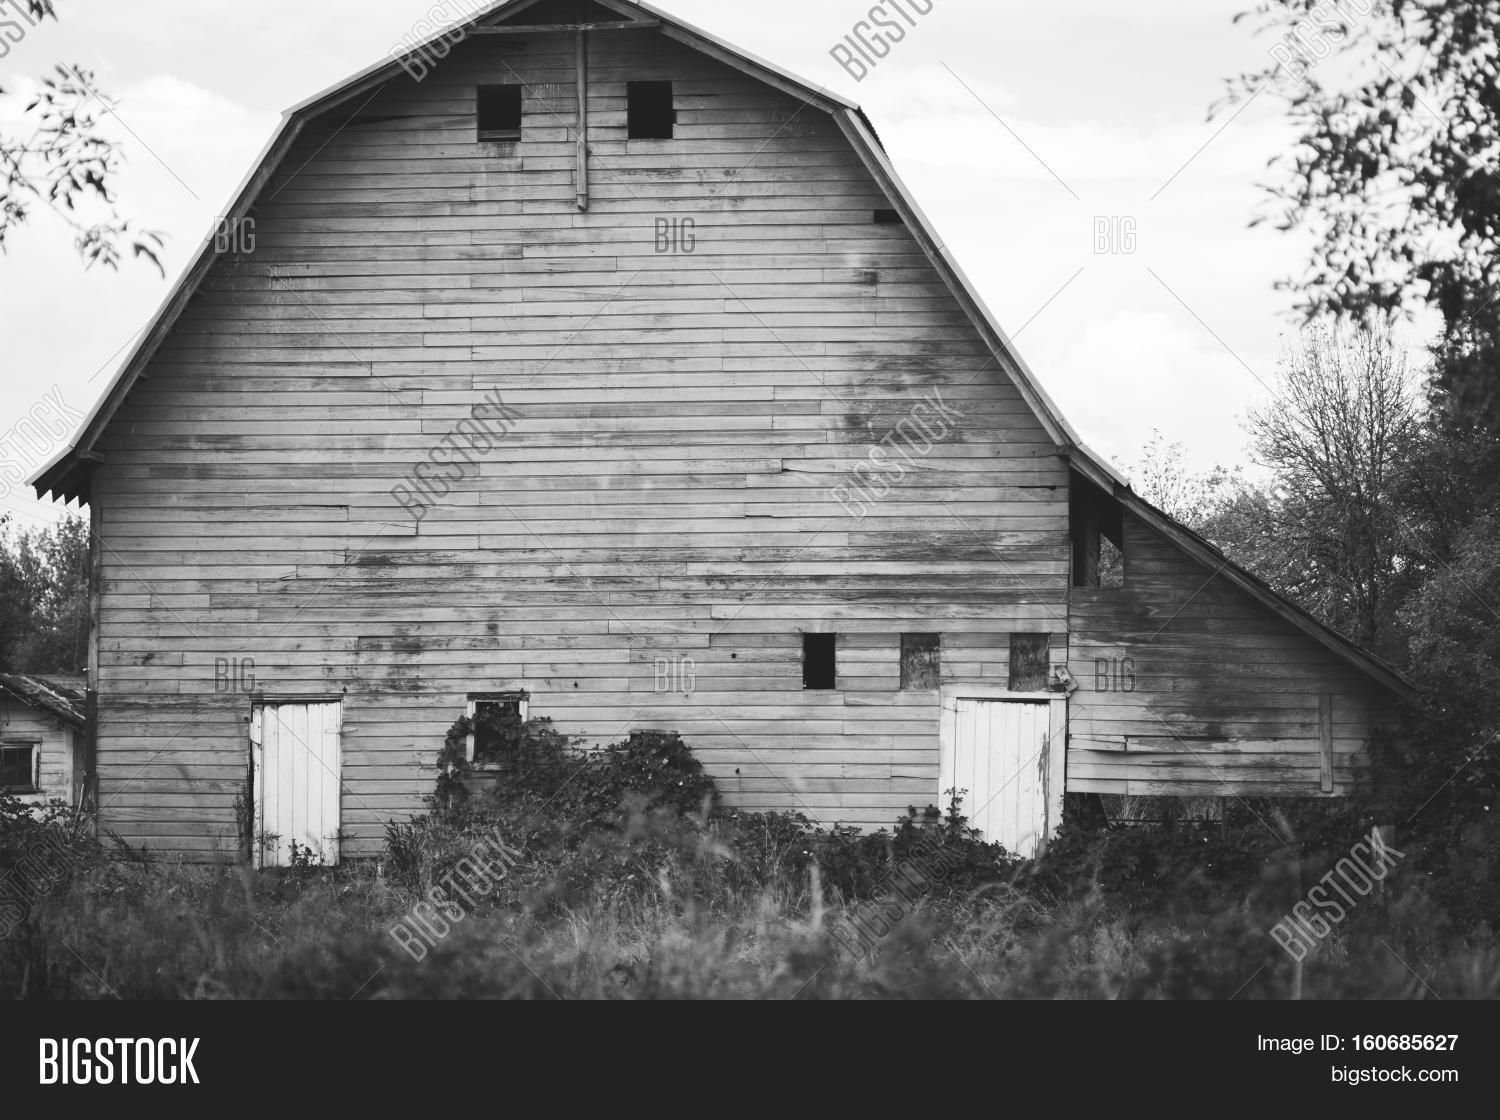 Large Old Barn Black Image Photo Free Trial Bigstock